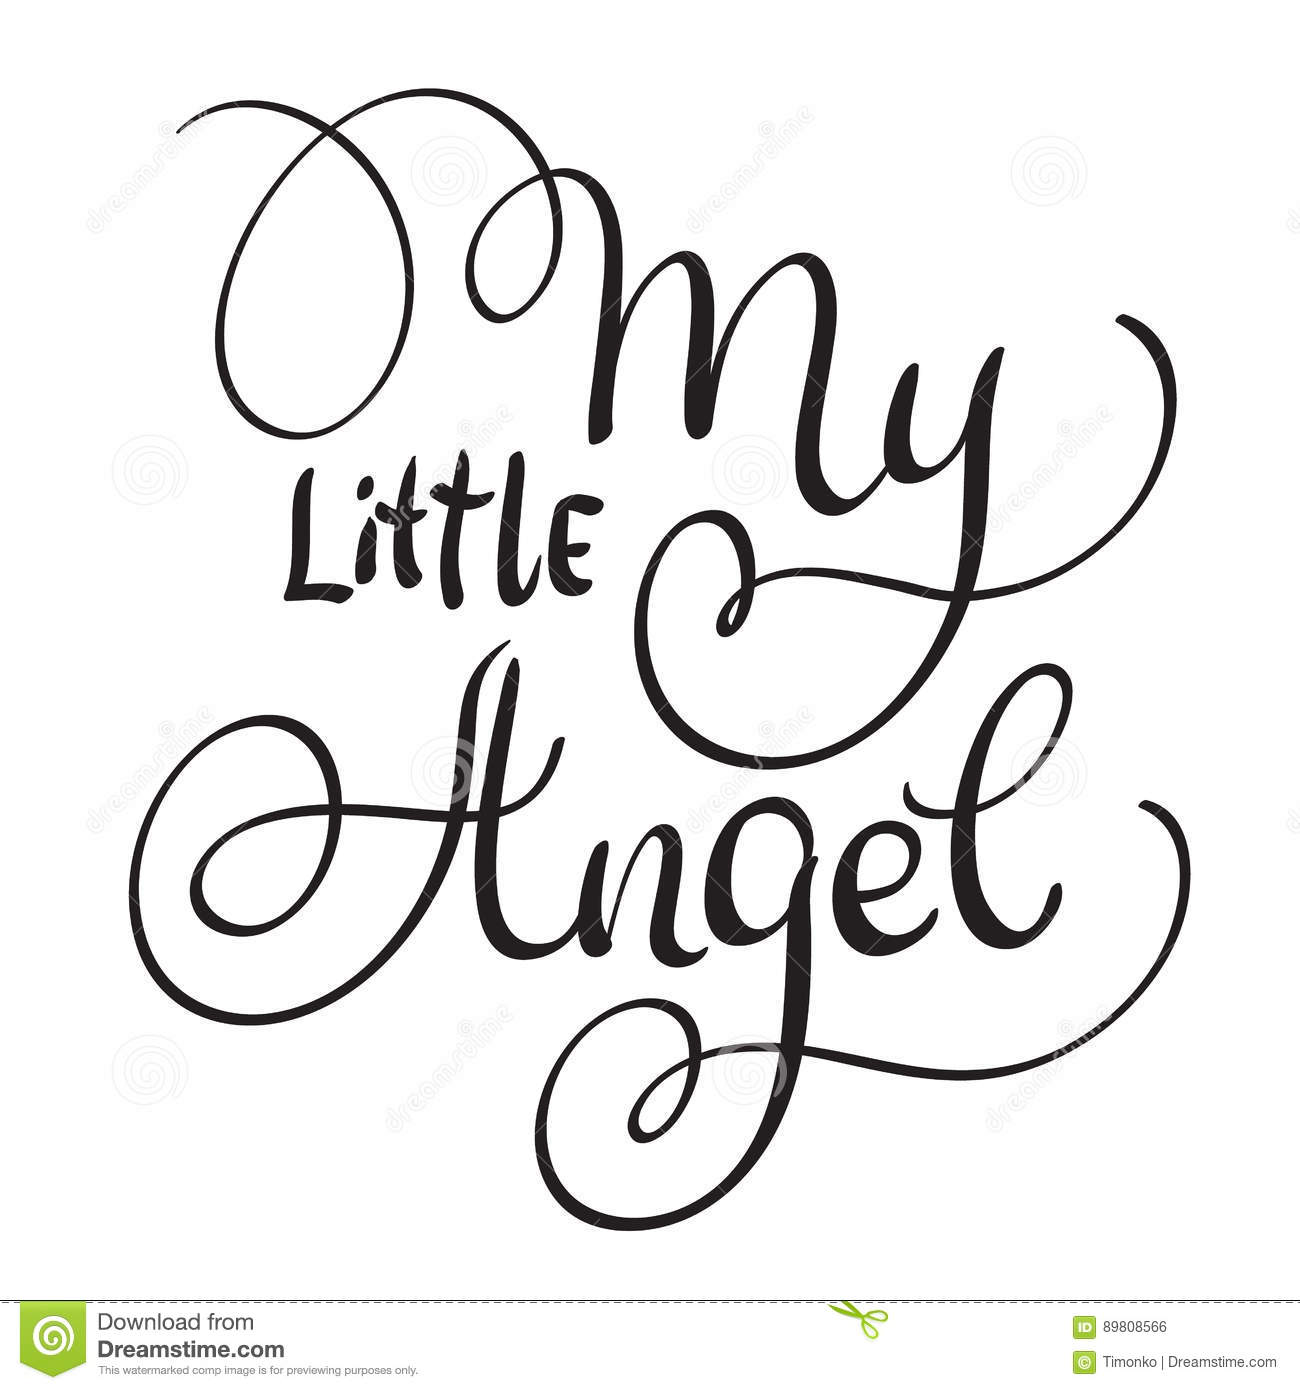 7549471578 likewise New Batman Free Coloring Pages Letscoloringpages   Batman Printable Coloring Pages additionally Marriage Quotes also Printable I Love You Coloring Sheets together with Easter Bunny Coloring Pages. on happy birthday angel baby